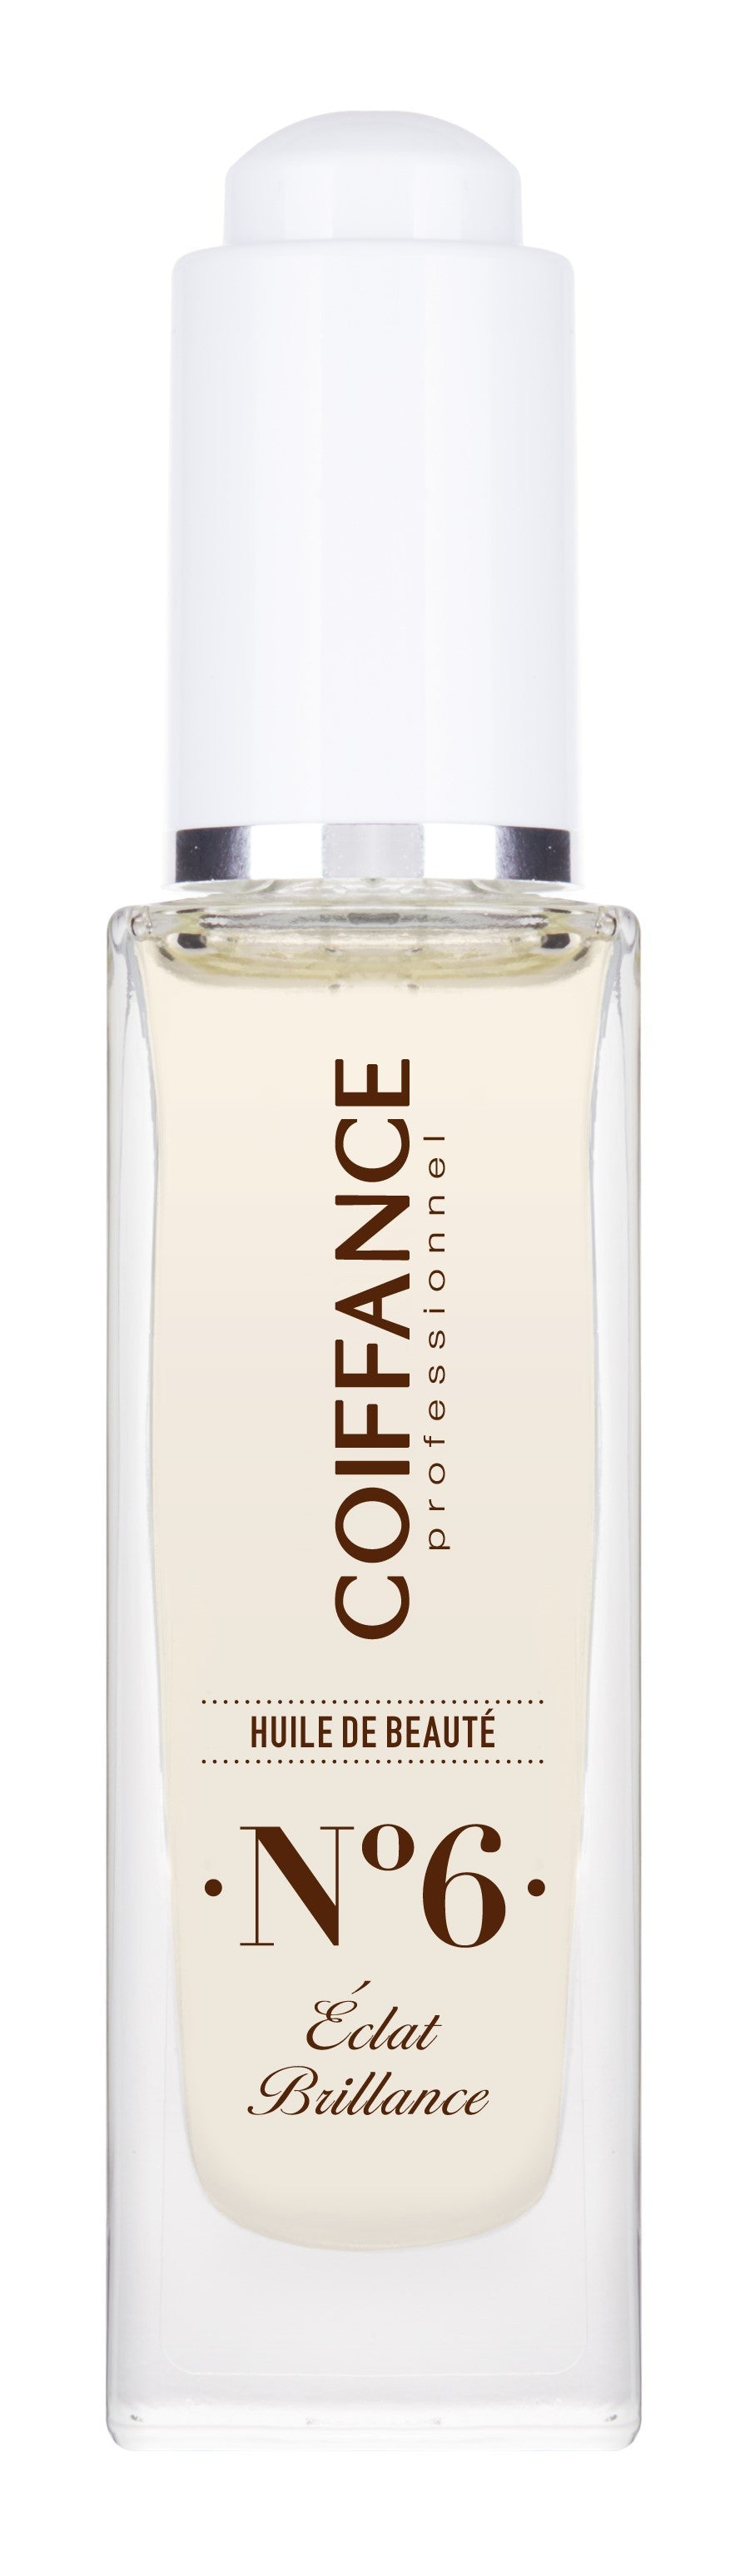 Coiffance - beauty oil - N°6